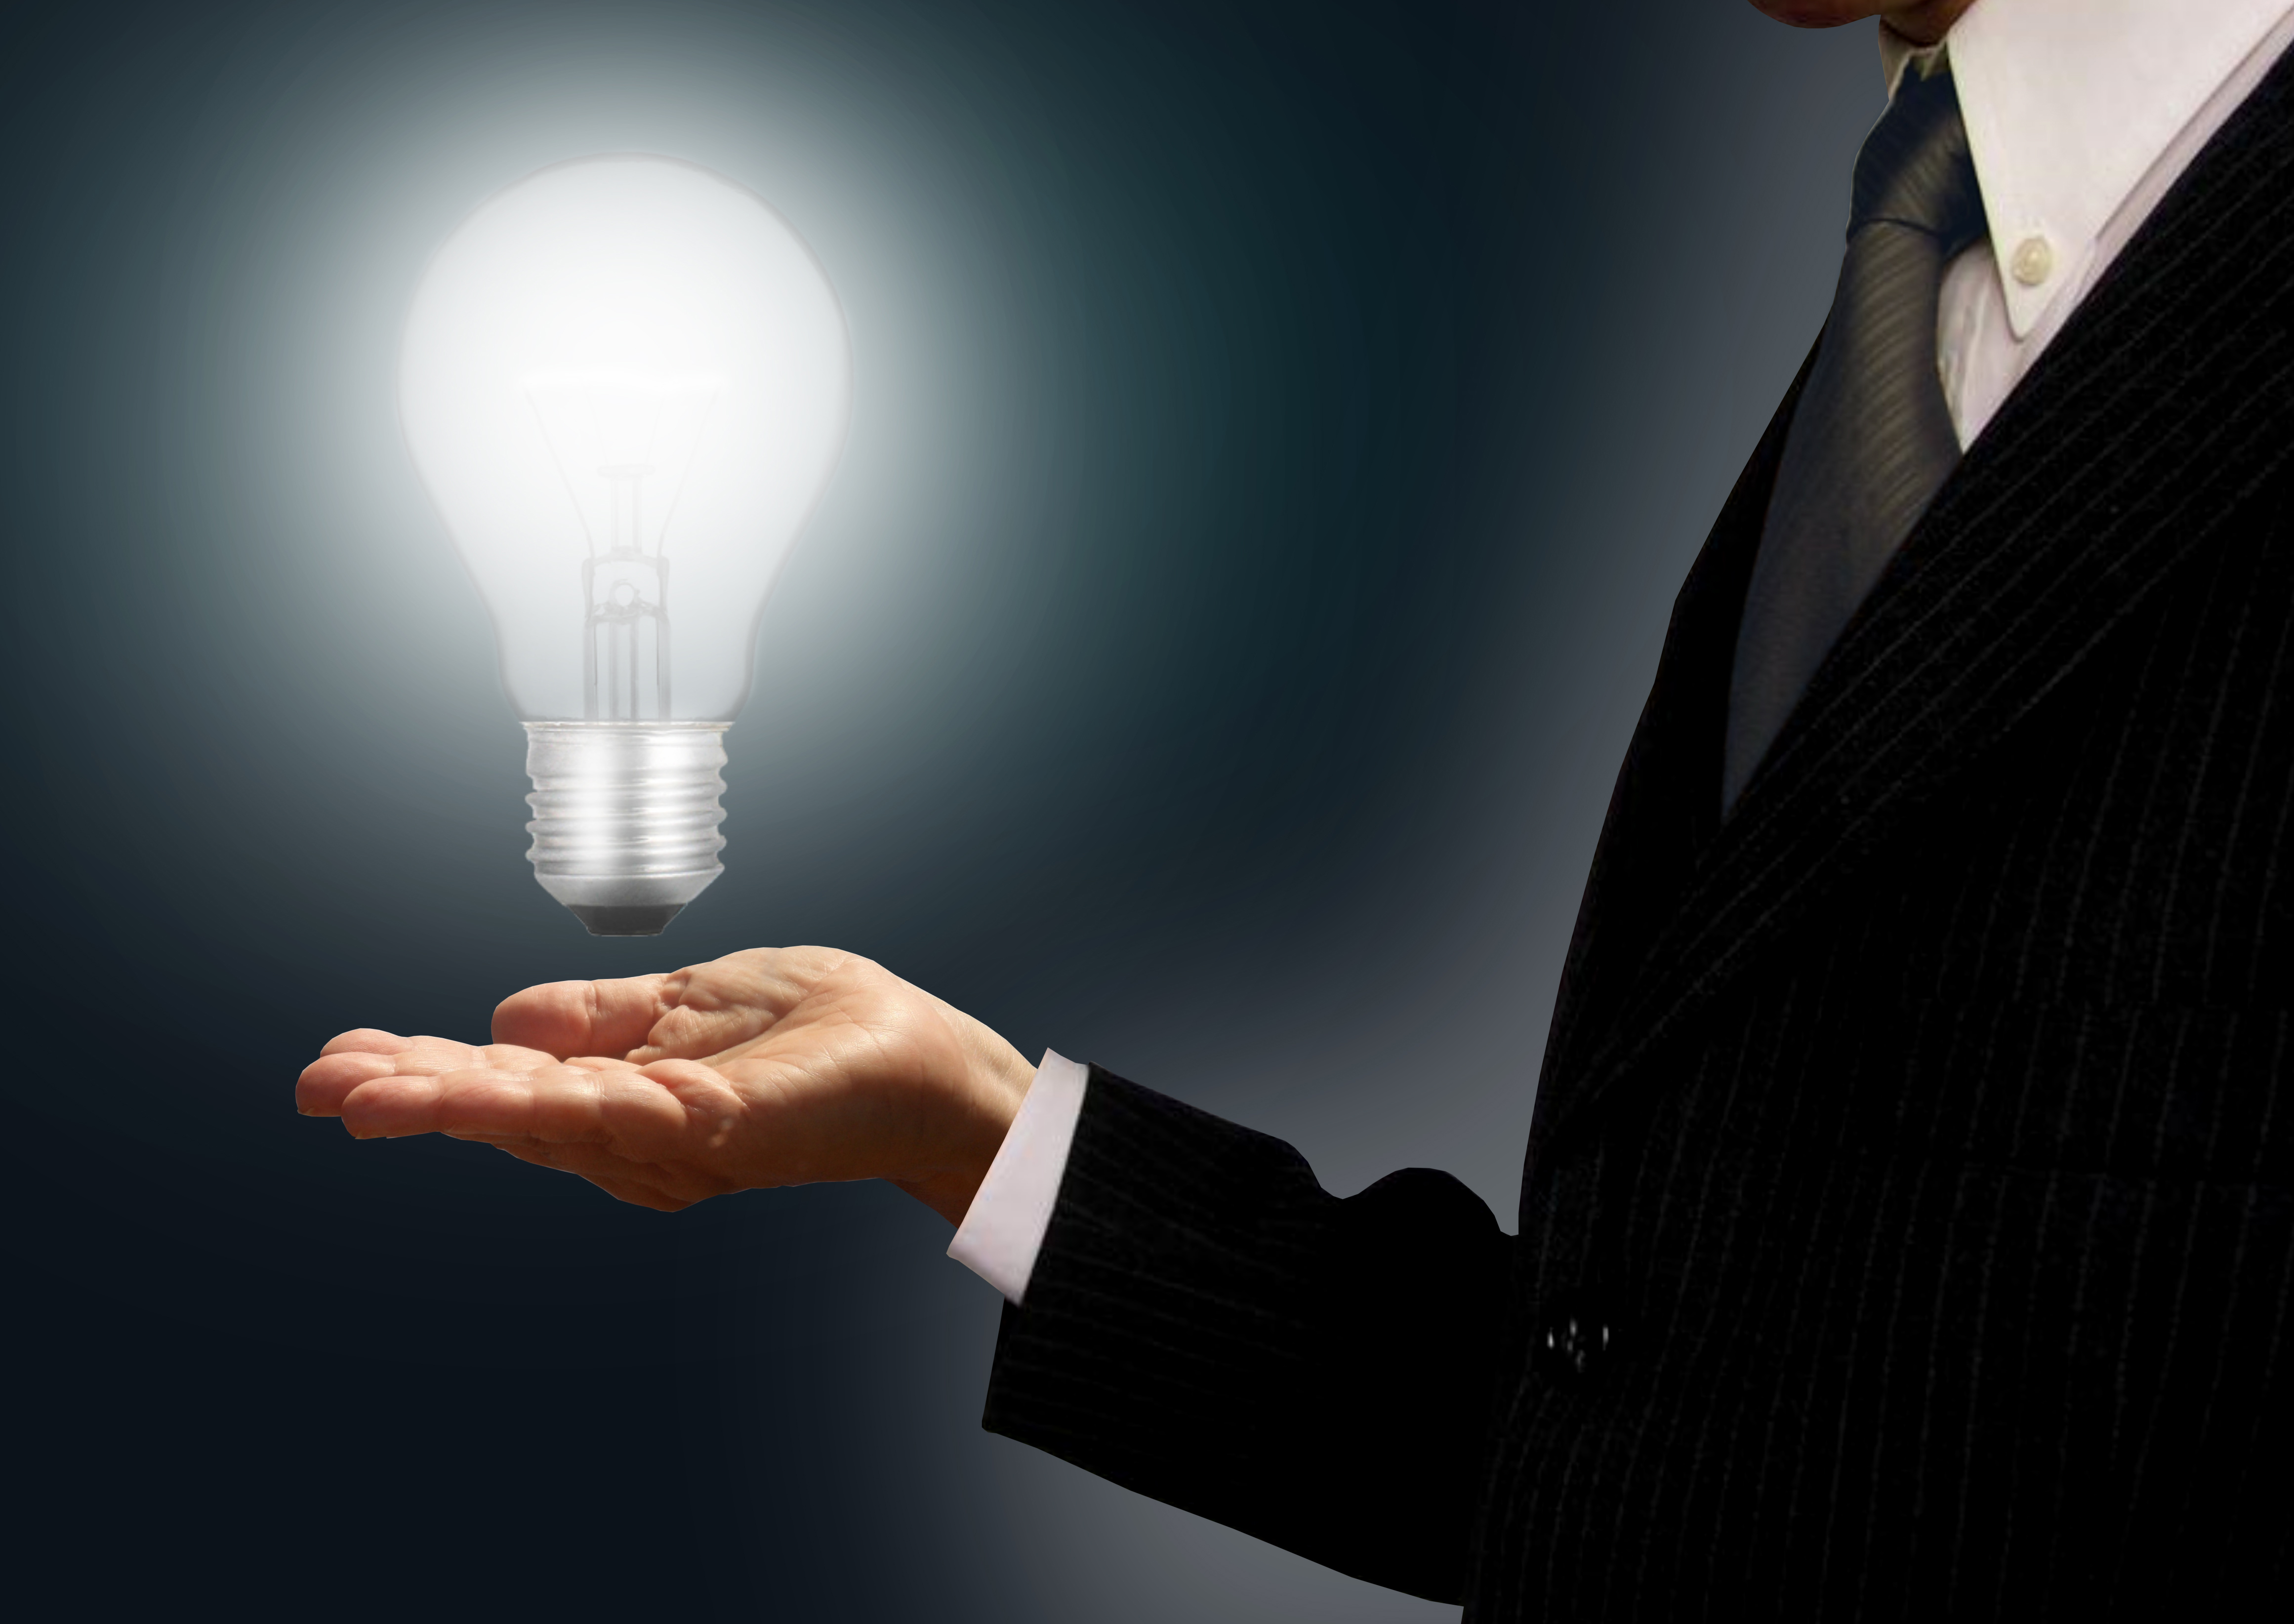 Businessman holding a lightbulb - ideas and creativity concept photo